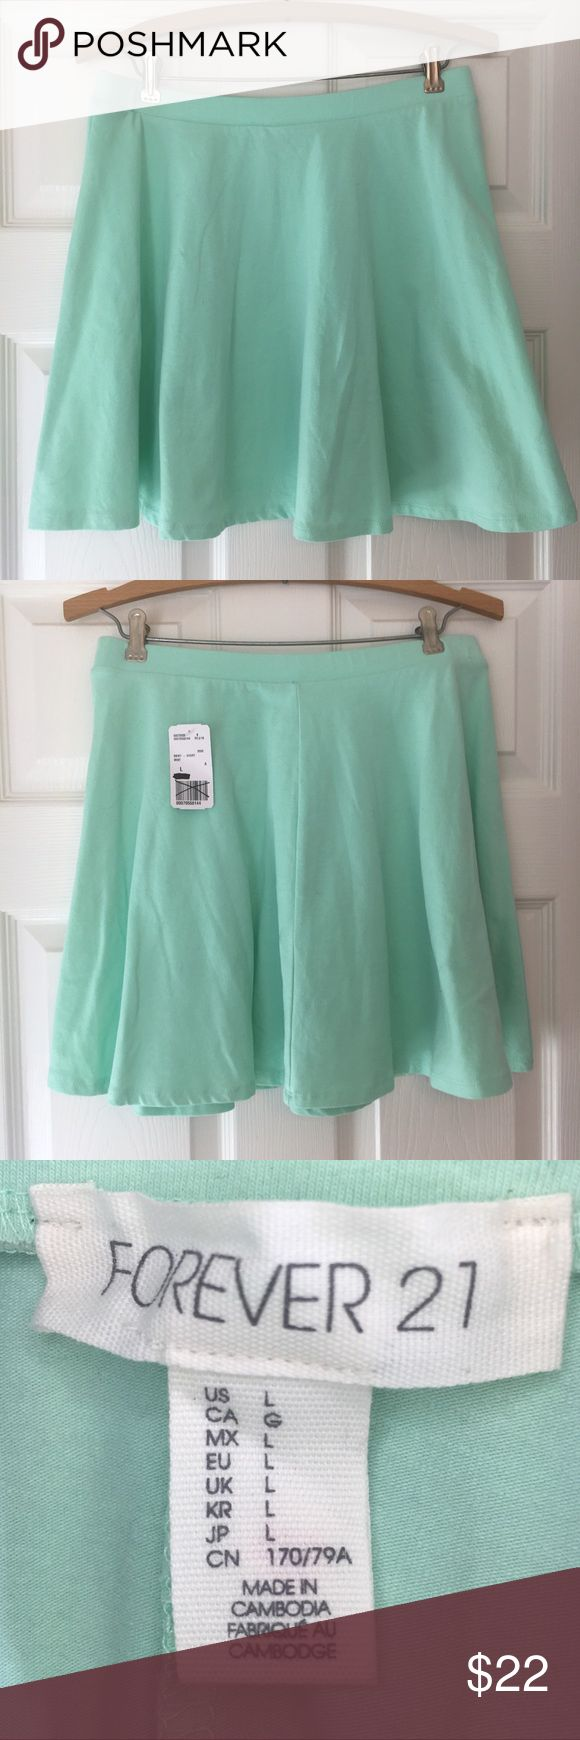 NEW Mint Green Forever 21 Mini-Skirt NEW Adorbs Mint Green Forever 21 Mini-Skirt with elastic waist (size Large). New with Tags! Forever 21 Skirts Mini